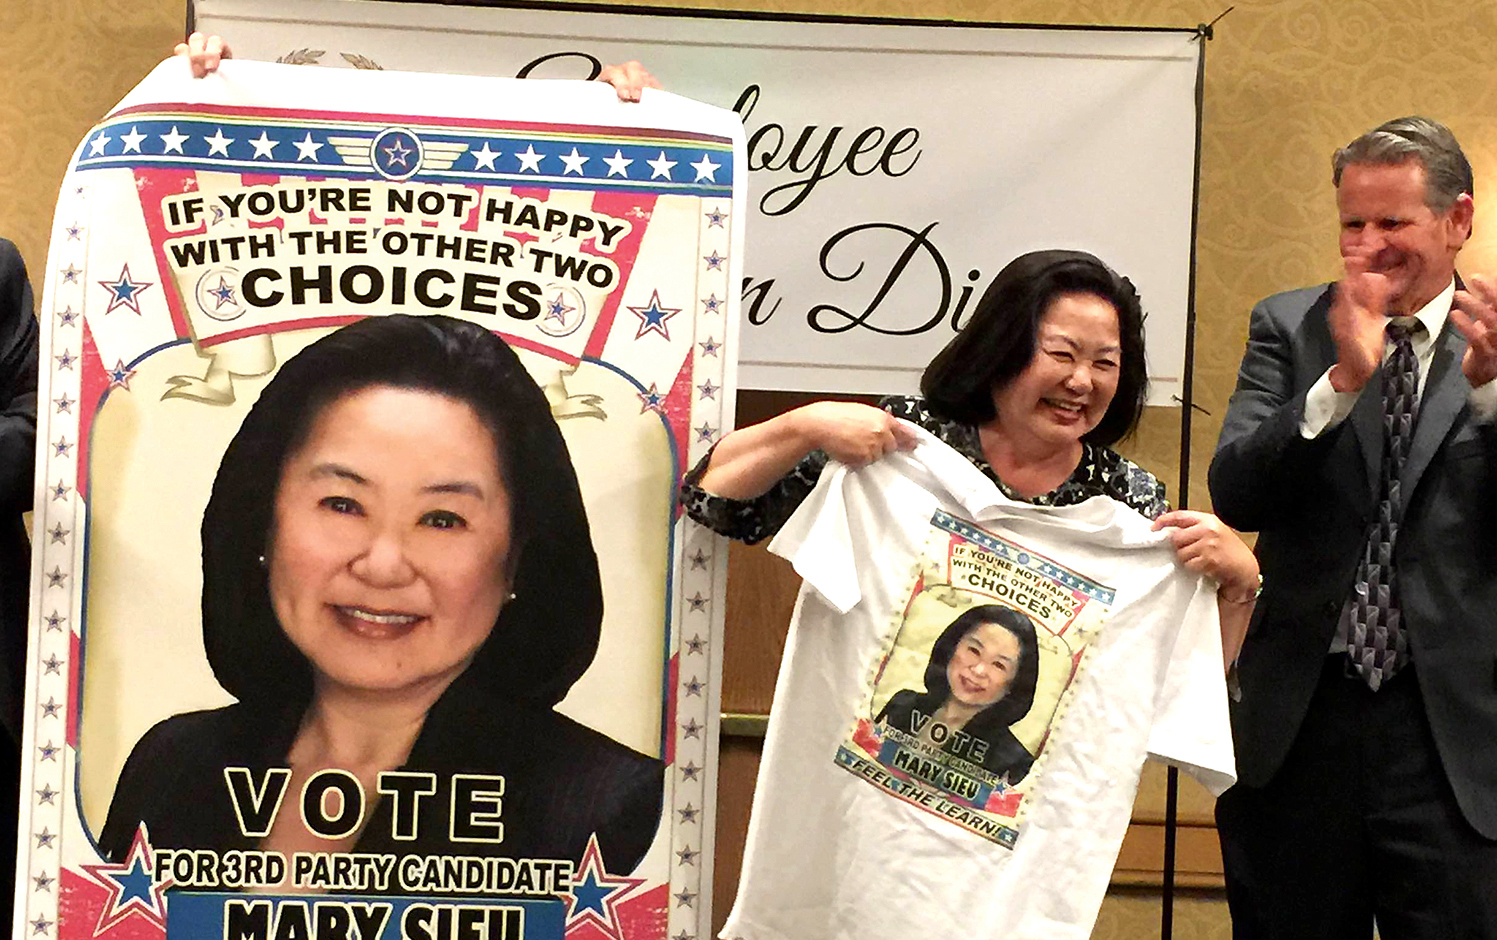 2017 ACSA Superintendent of the Year Dr. Mary Sieu